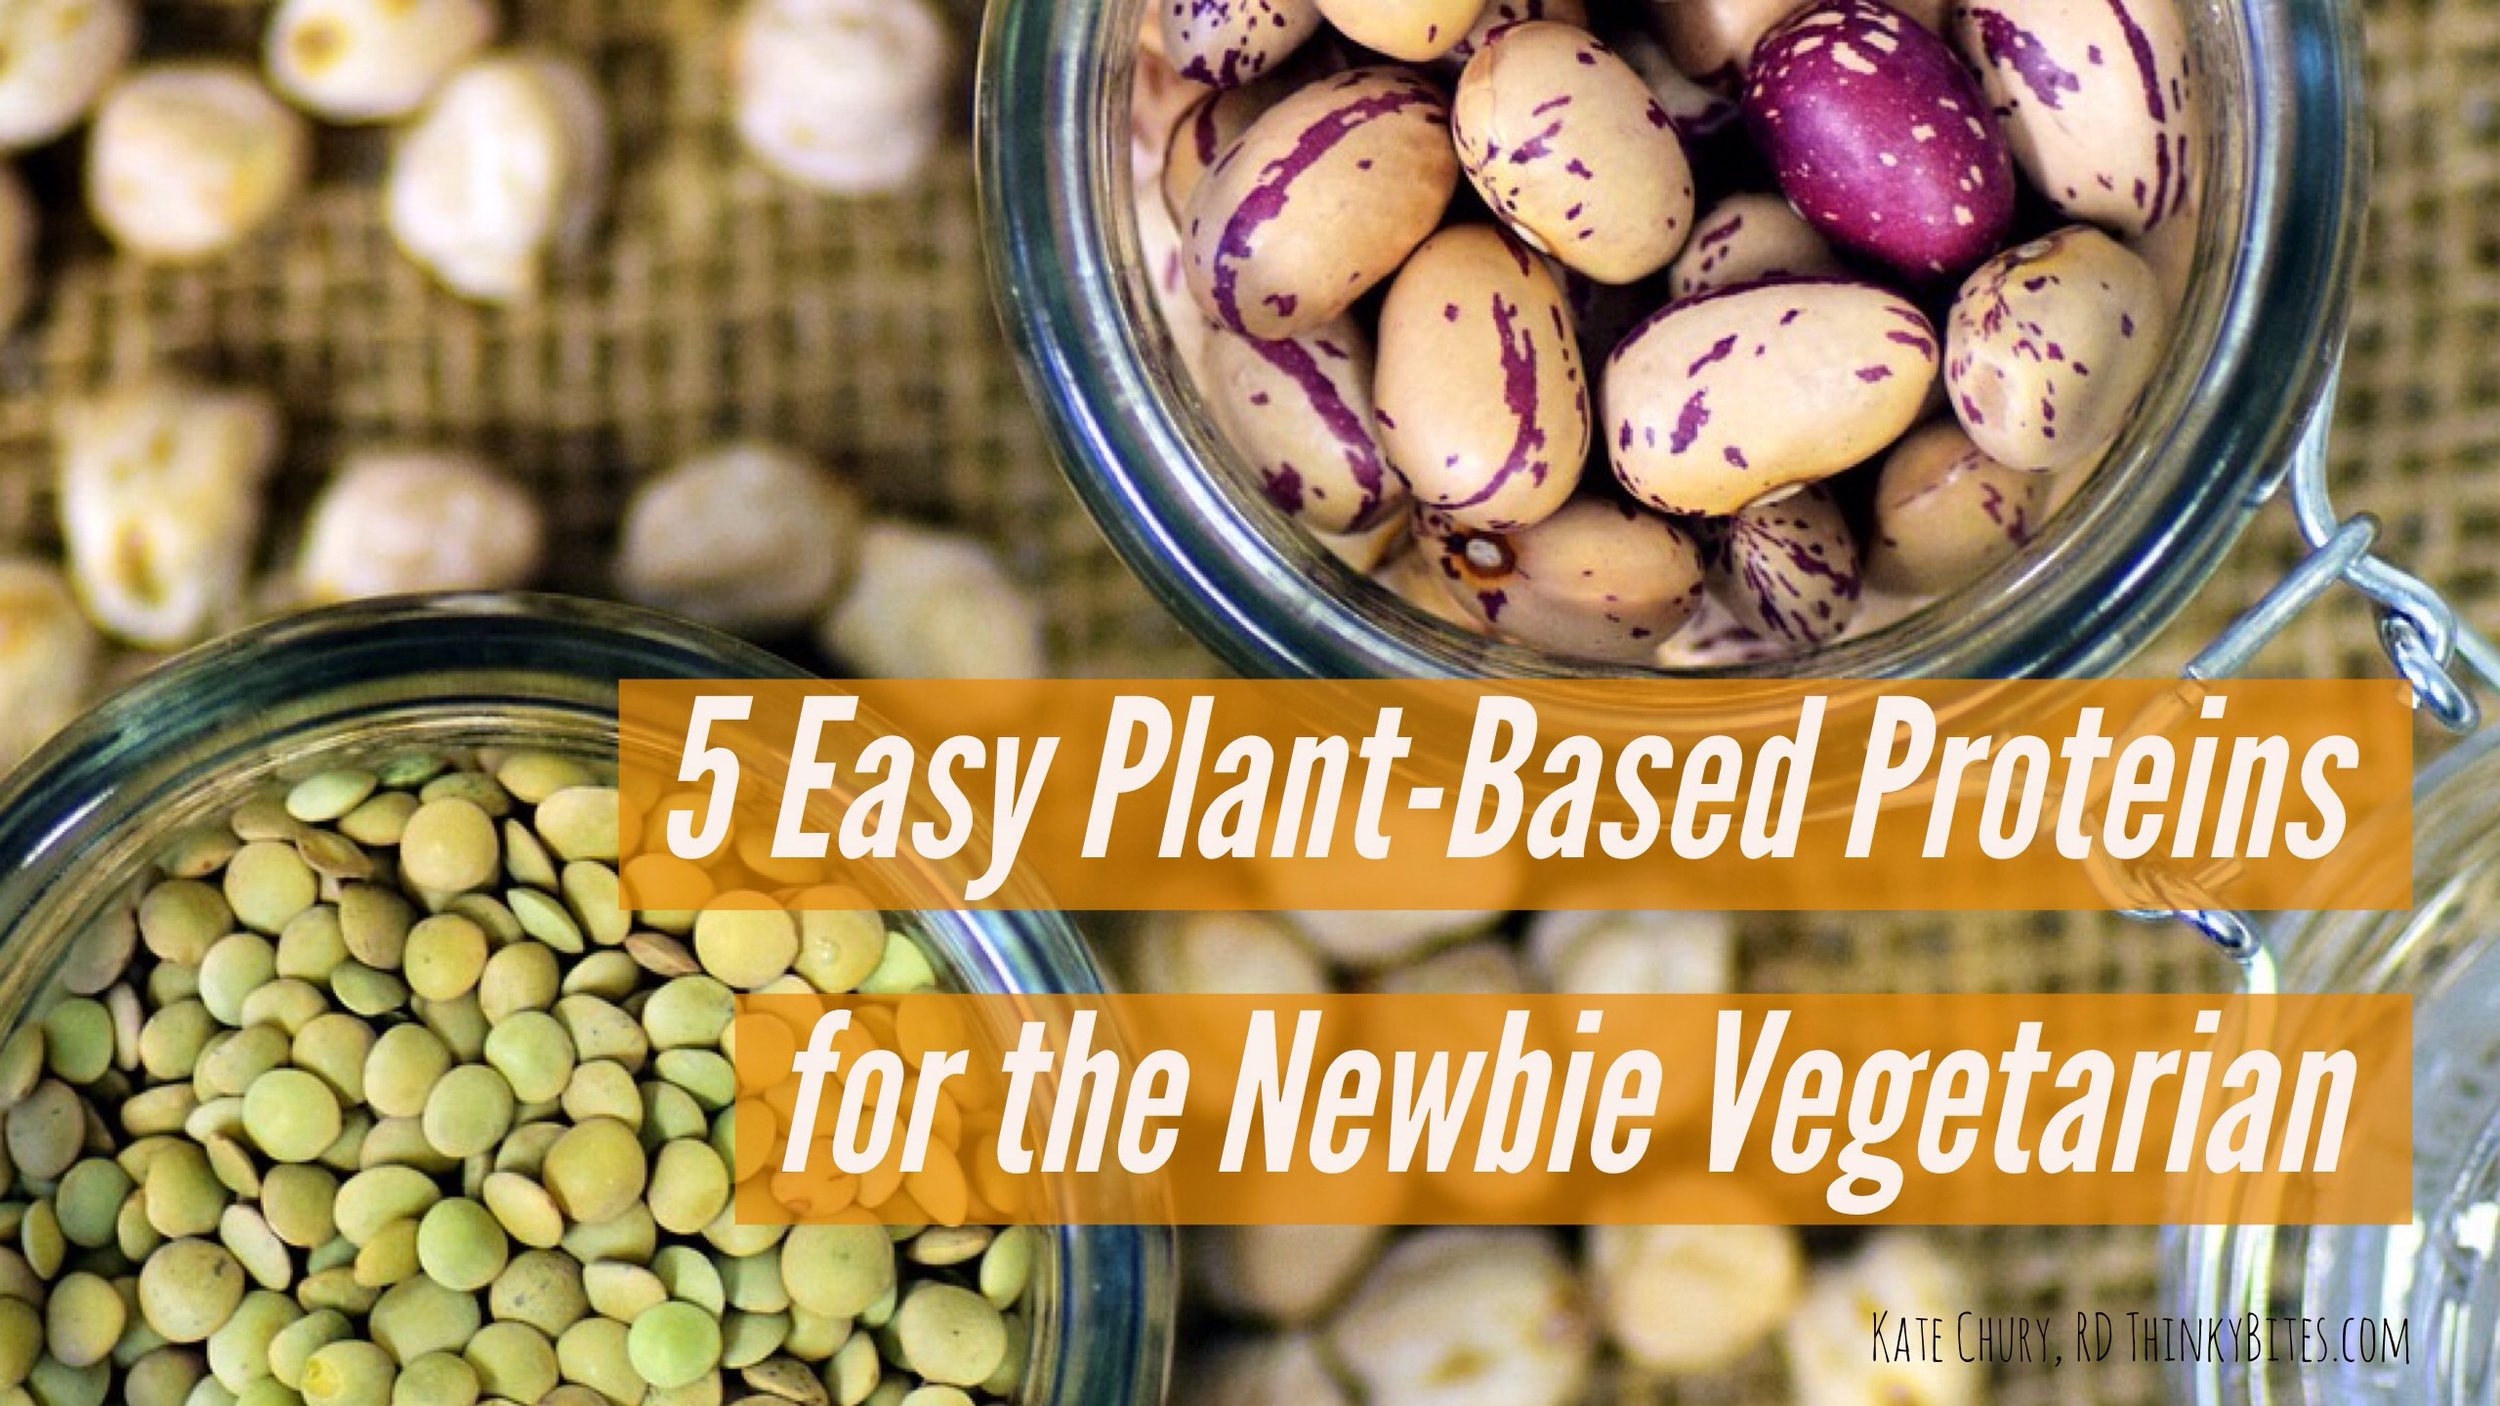 5 Easy Plant-Based Proteins for the Newbie Vegetarian